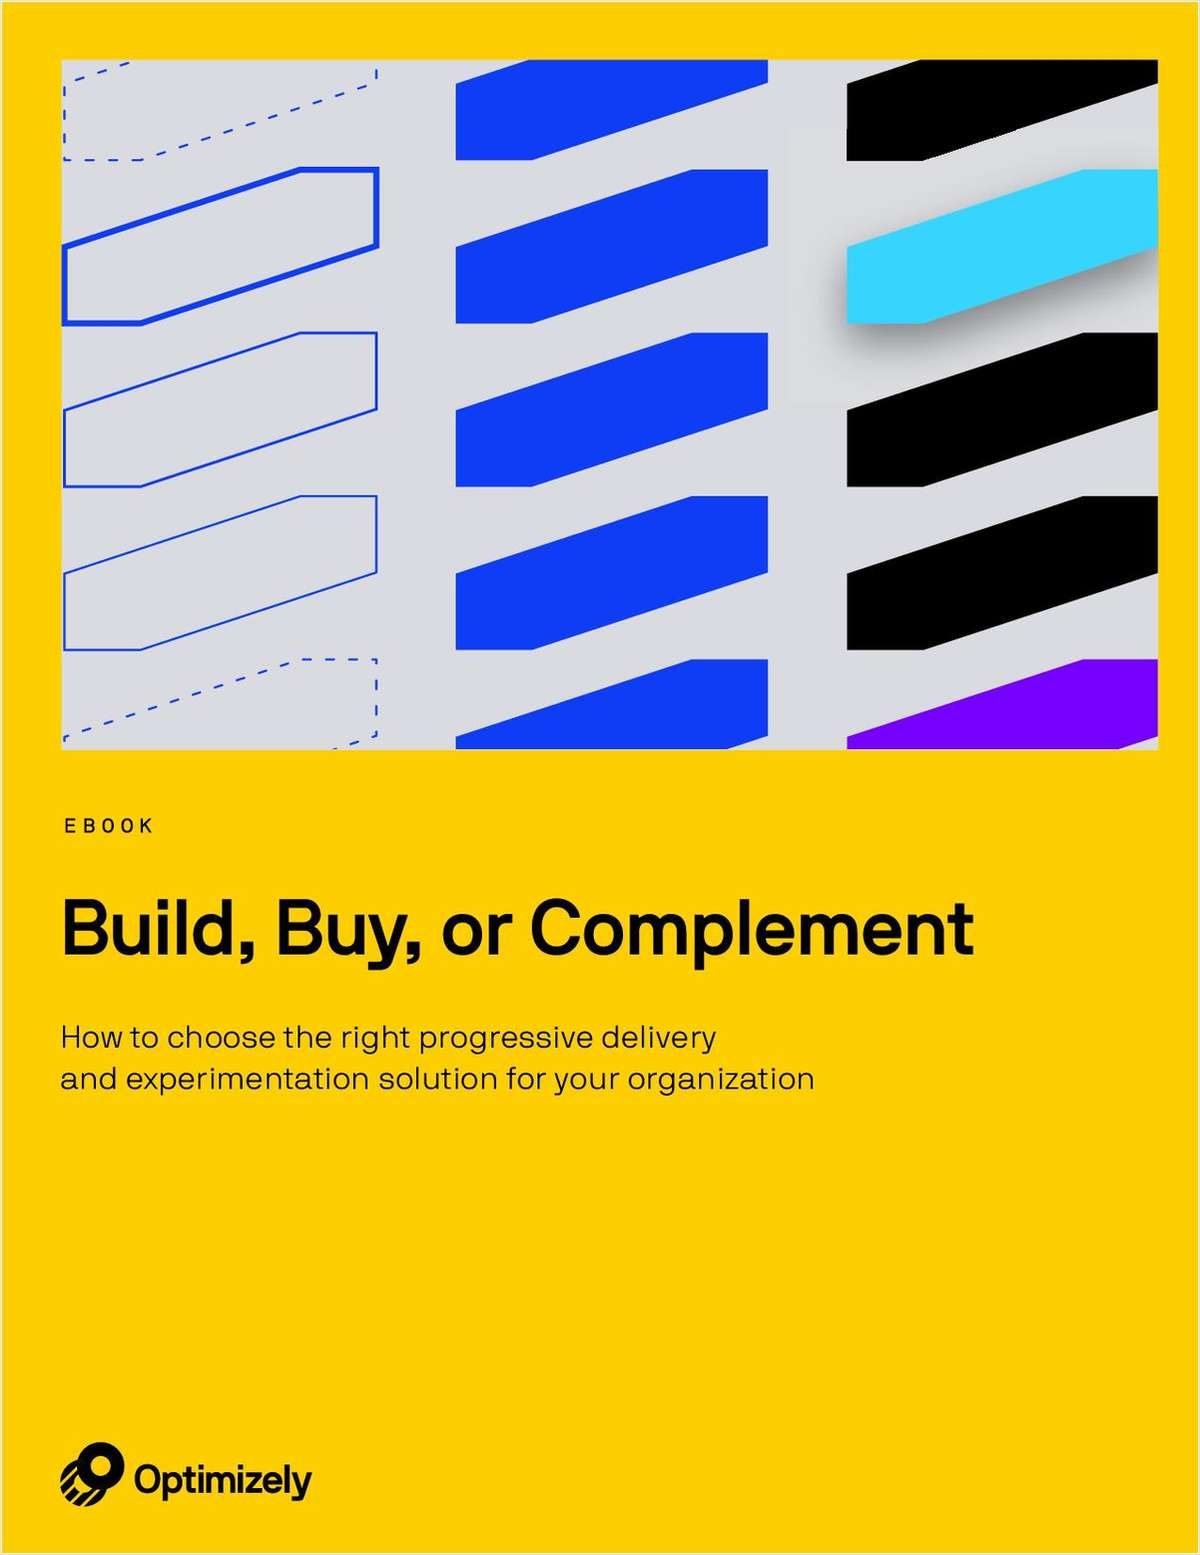 Should you Build, Buy or Complement?